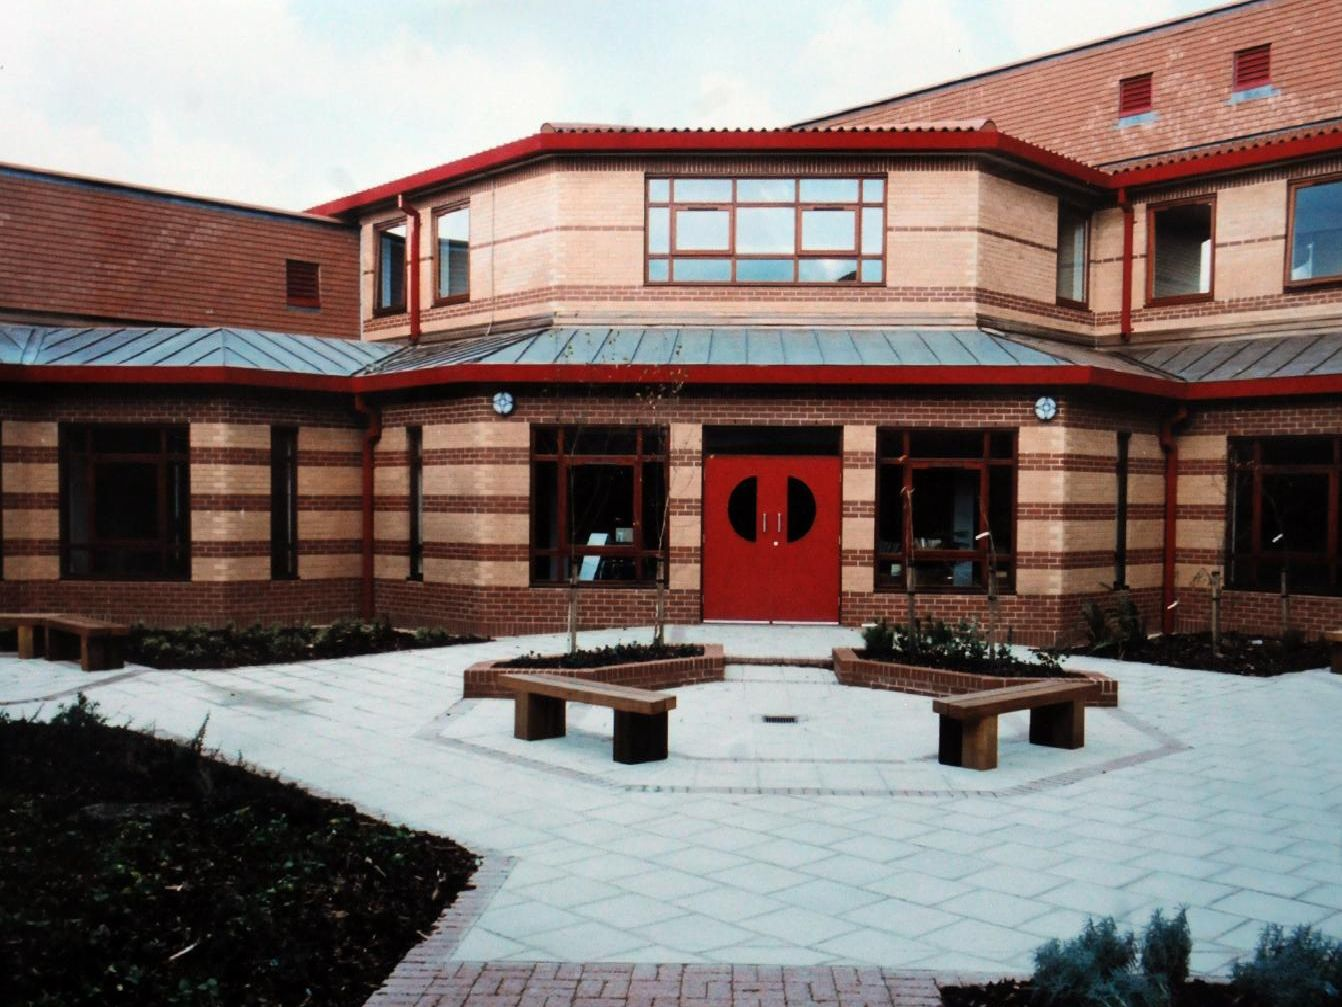 38 pictures of Ashton on Ribble High School pupils in the 90s